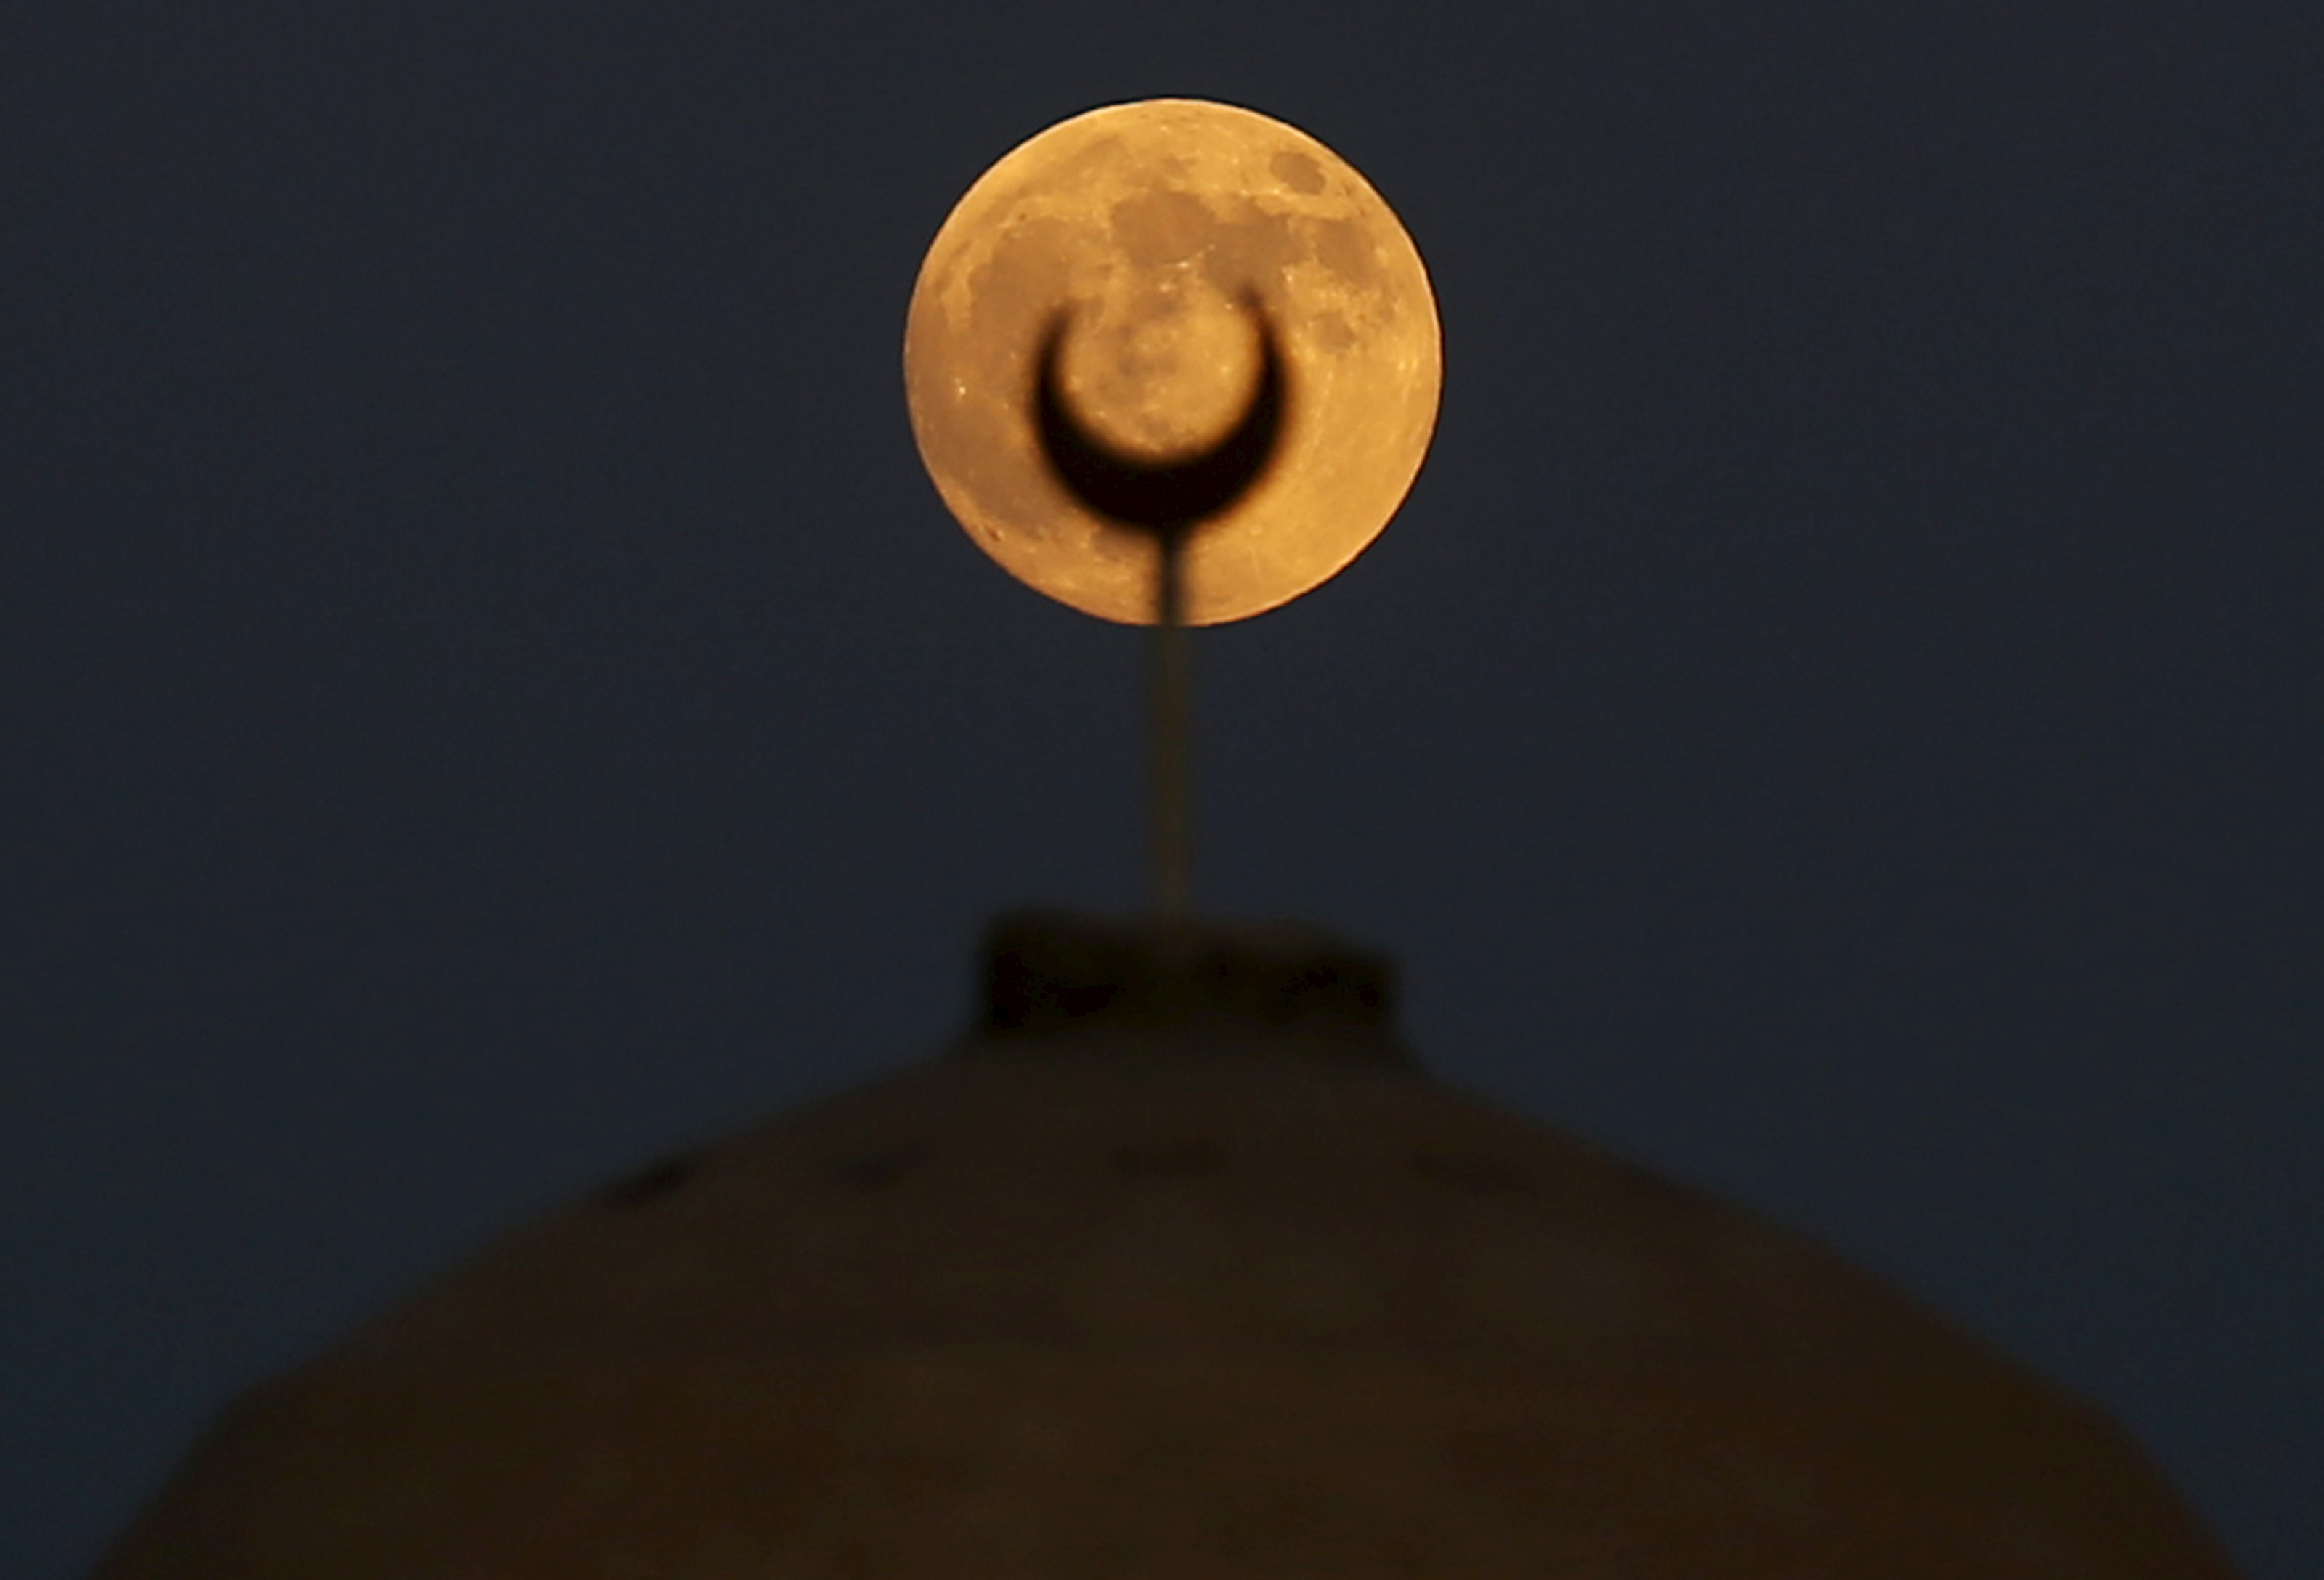 The last of this year's supermoons rises above a minaret of a mosque in Wadi El-Rayan Lake at the desert of Al Fayoum Governorate, southwest of Cairo, Egypt, on Sept. 27. Photo by Amr Abdallah Dalsh/Reuters